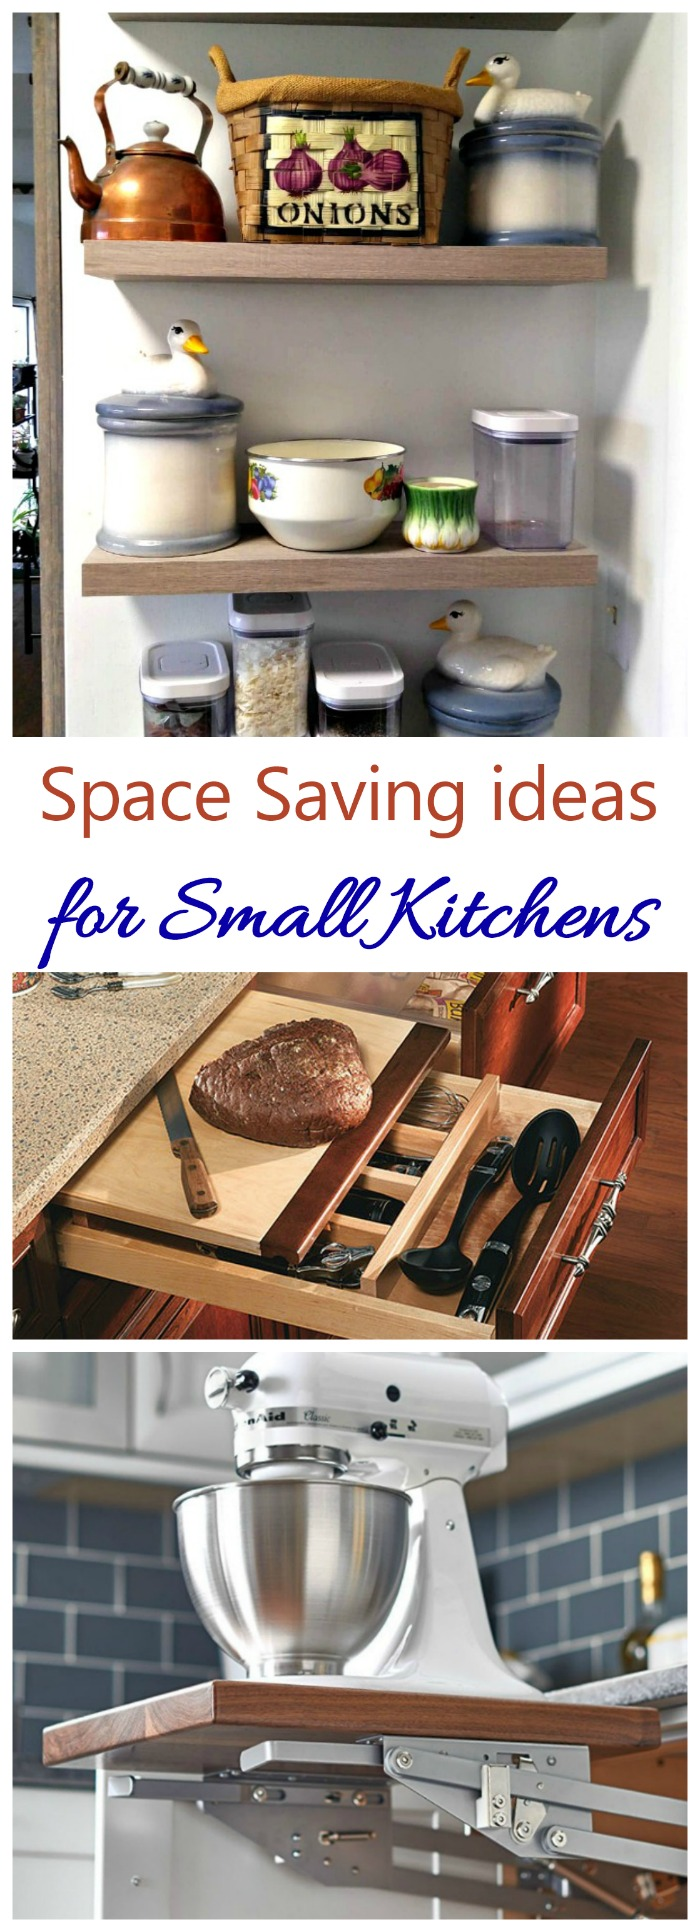 These space saving kitchen ideas will make the most of the space you have in your tiny kitchen.